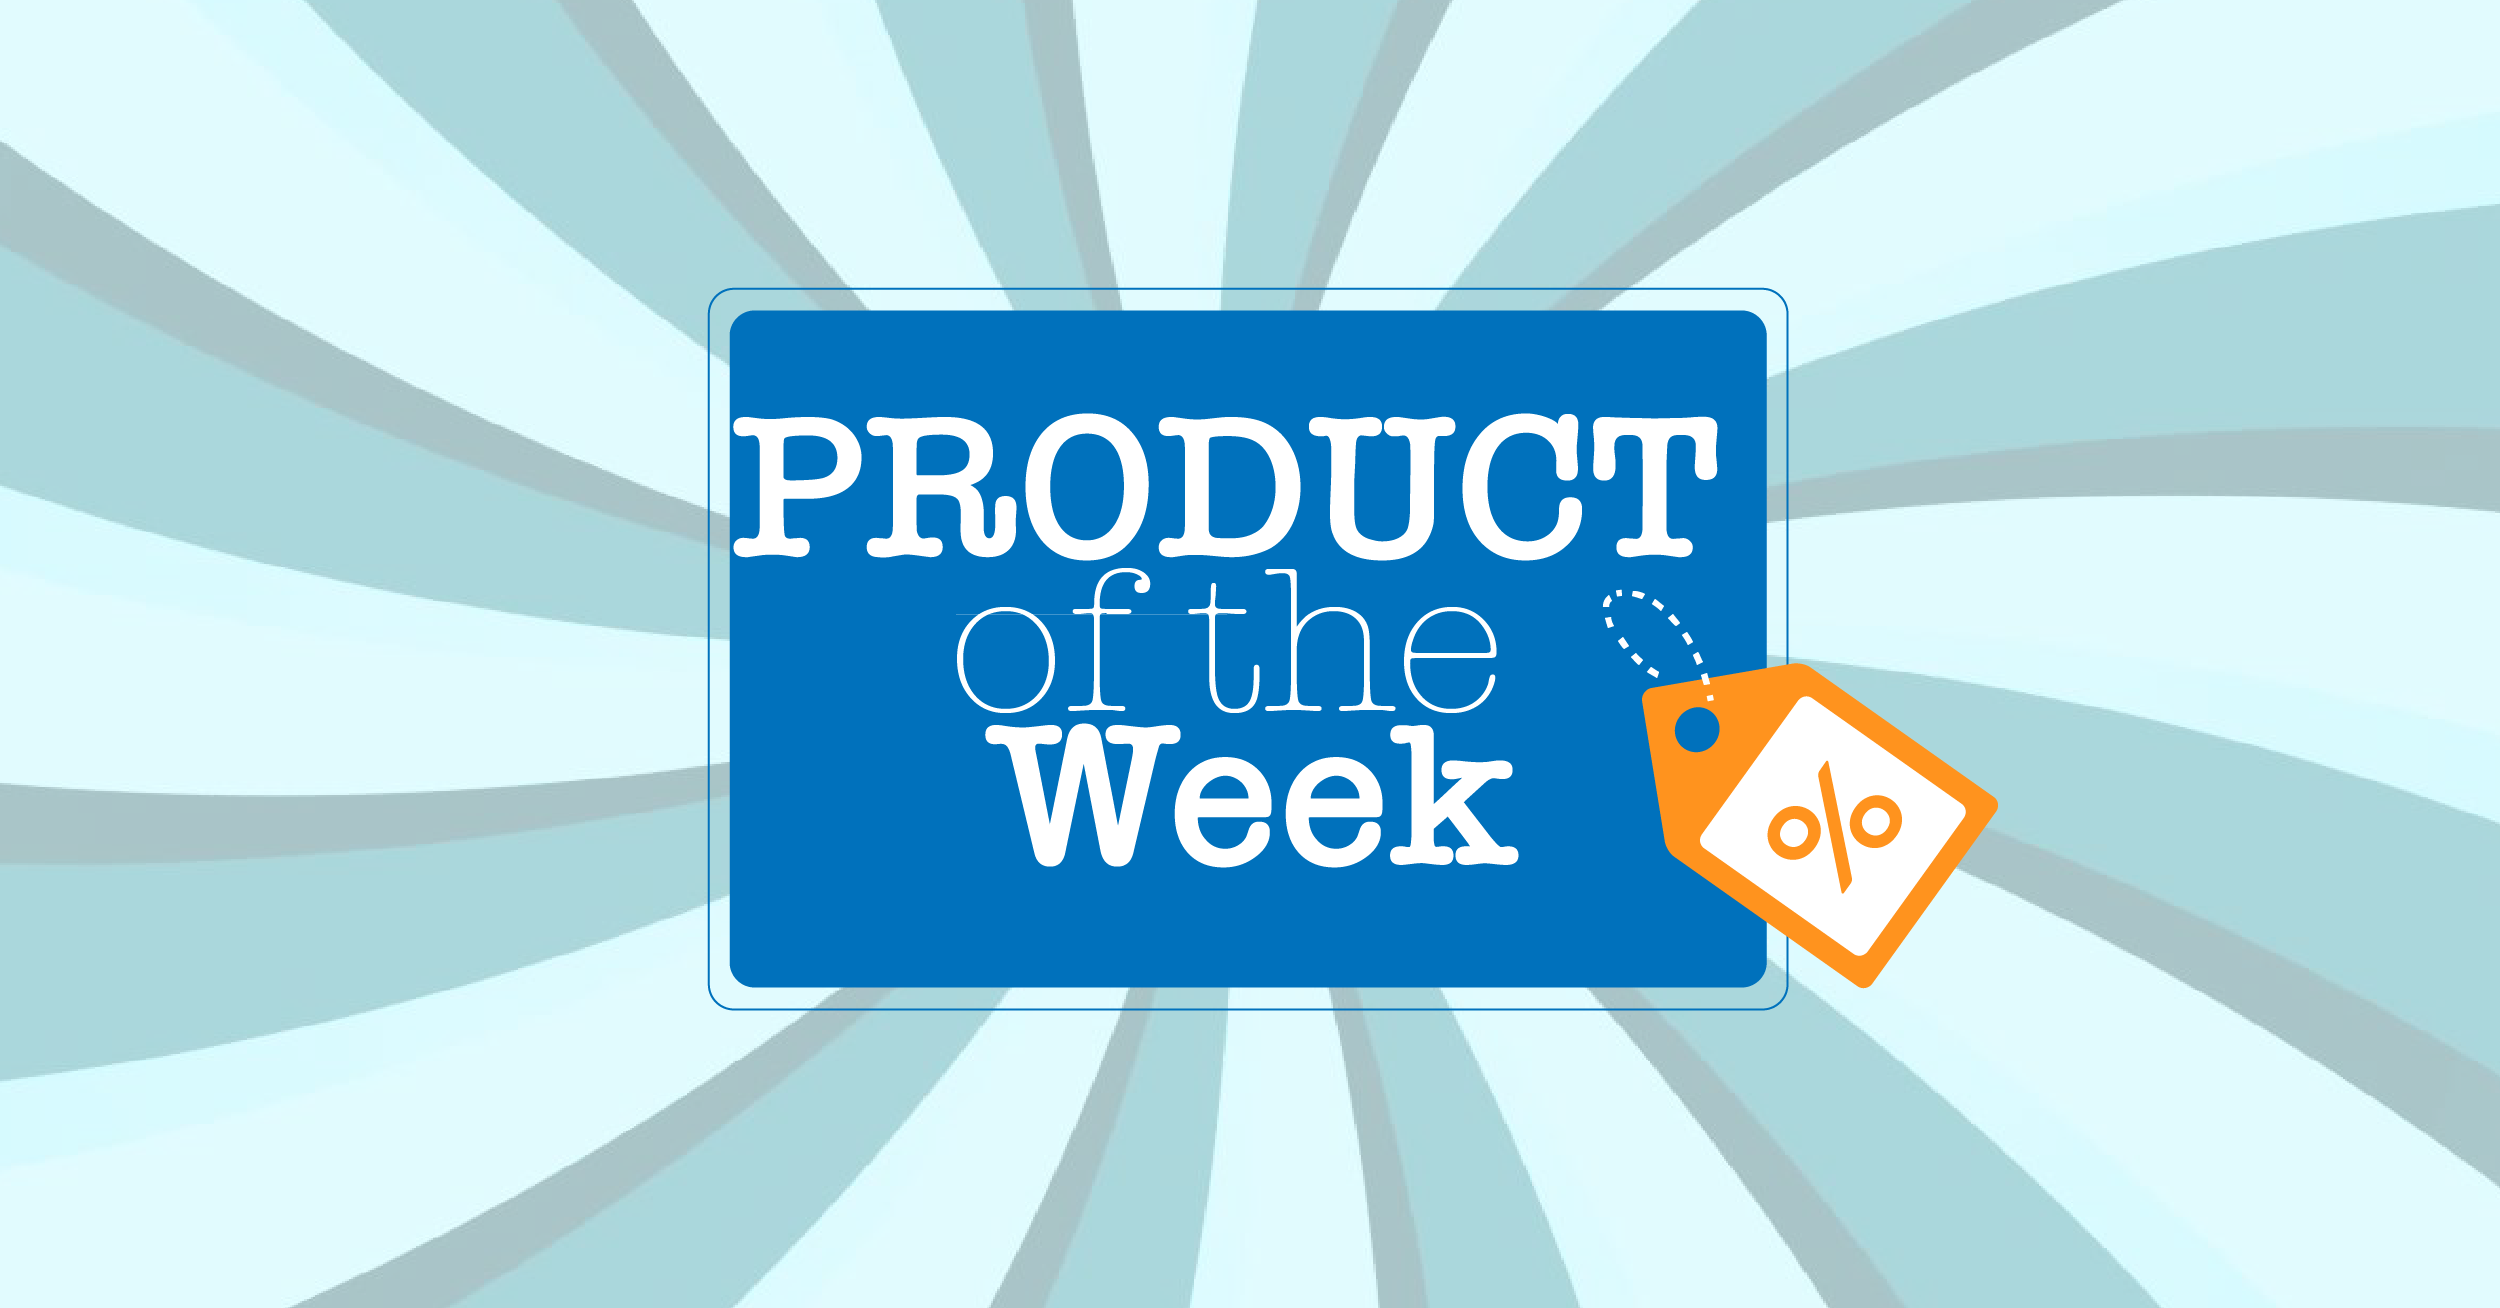 Product of the week announcement in a blue box with orange discount icon